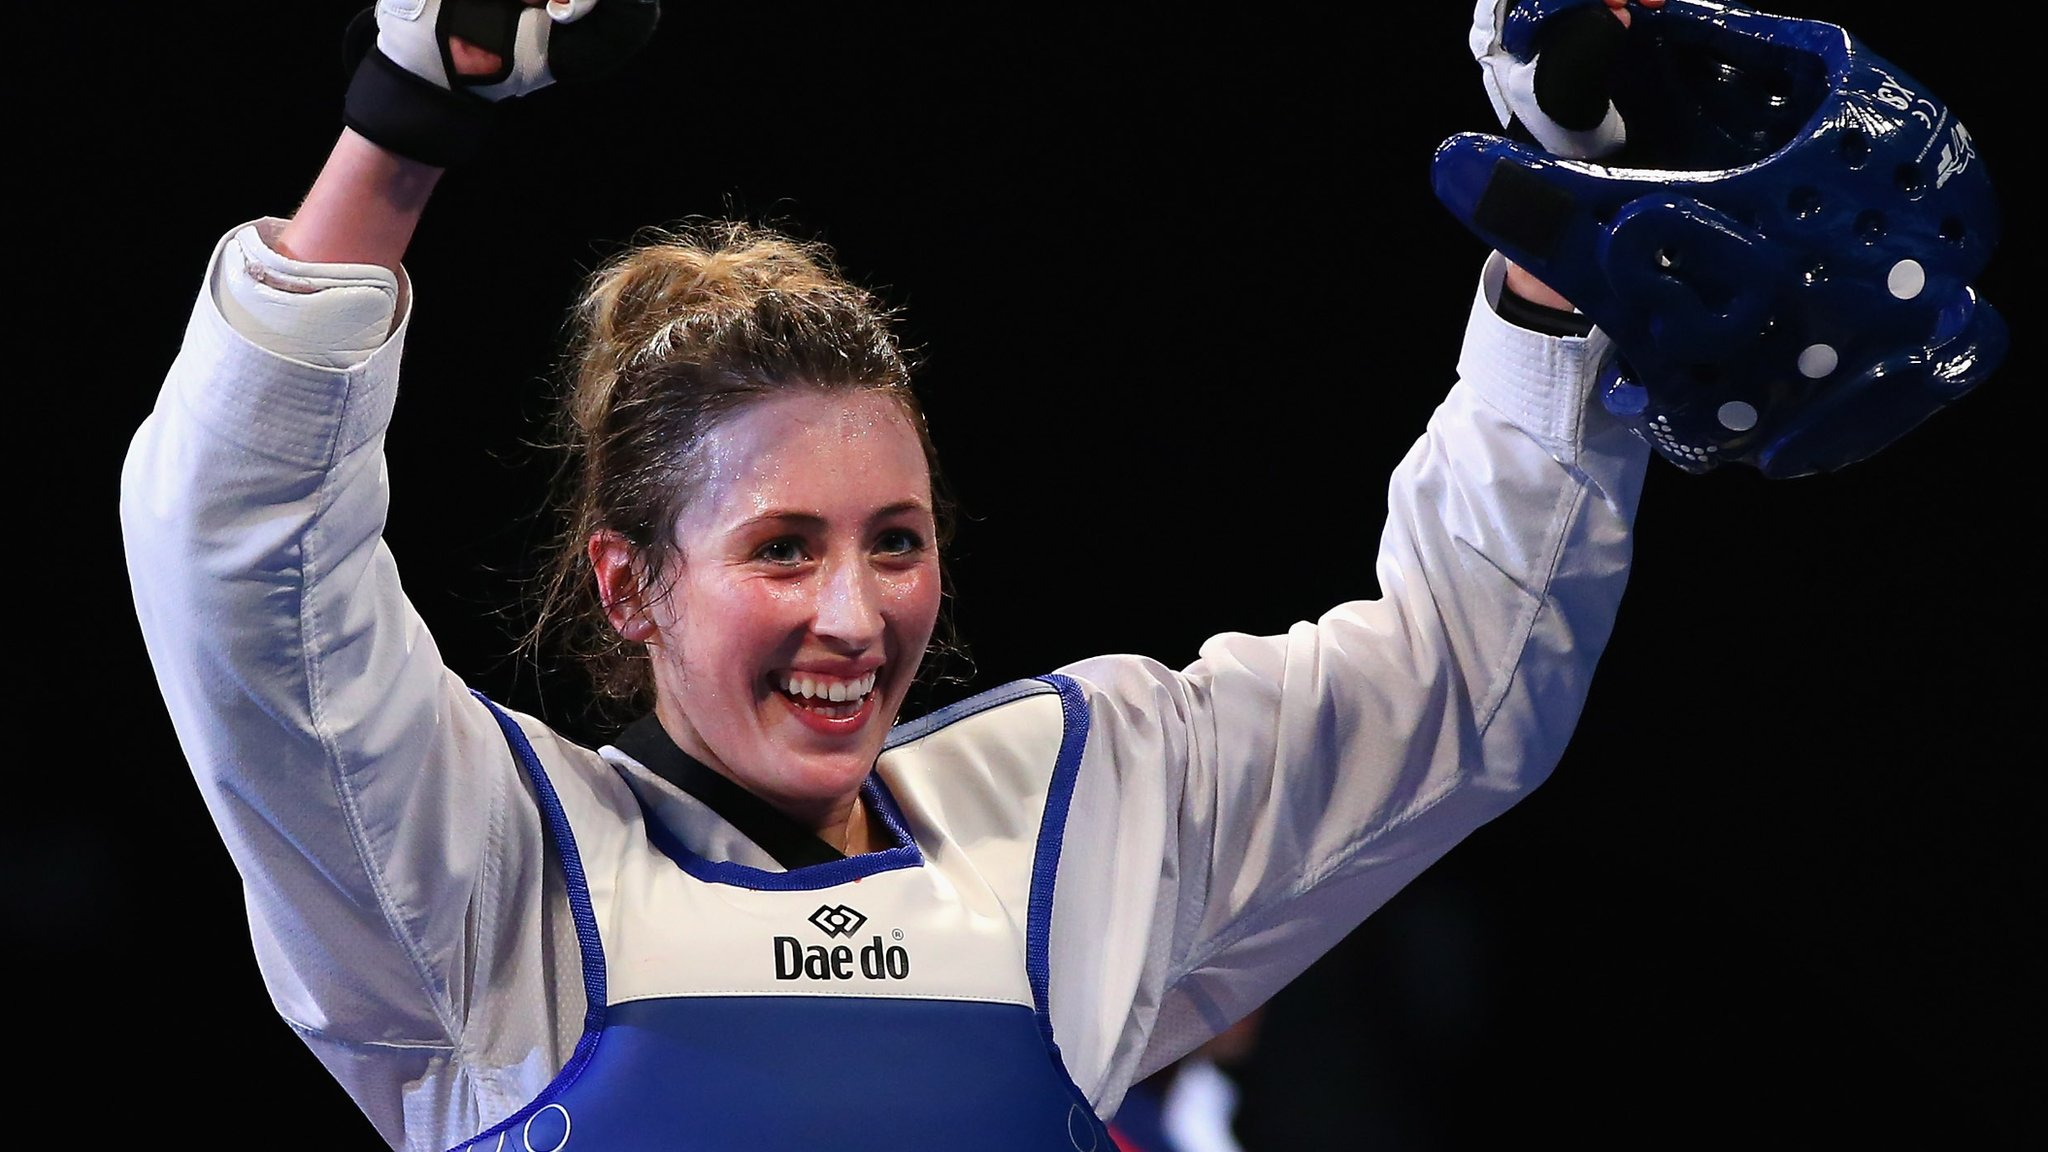 World Taekwondo Grand Prix: GB's Jade Jones wins gold in Manchester